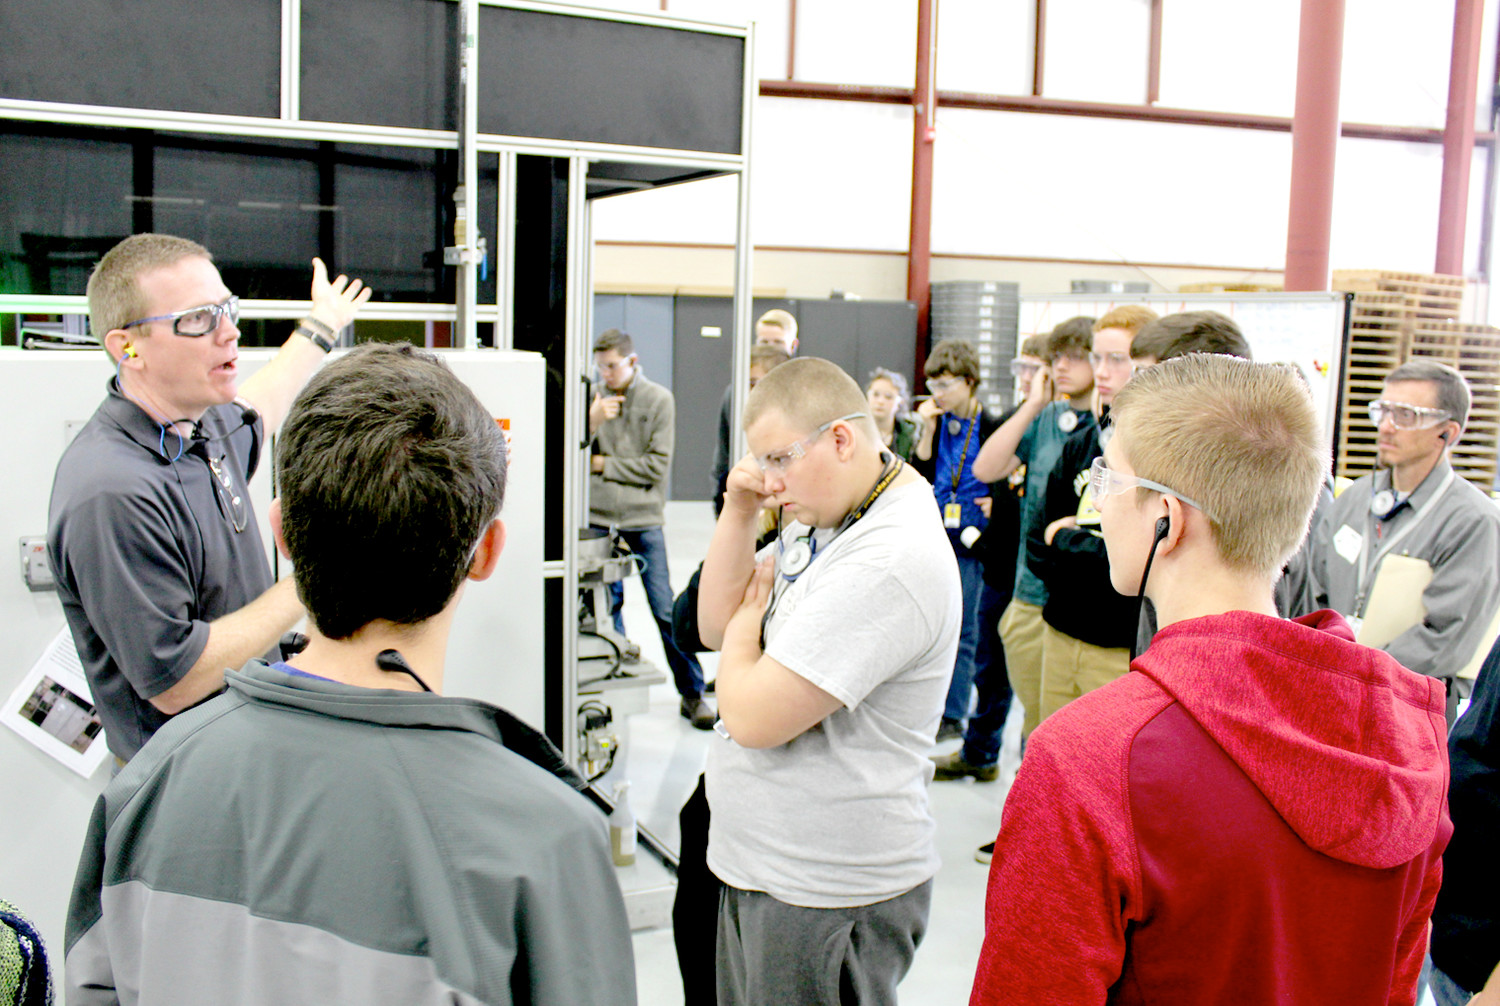 RODNEY HODGES of Mueller Co., left, teaches a group of Bradley Central High School students about the robot housed in the black box nearby. The class and company were paired together for Manufacturing Week.